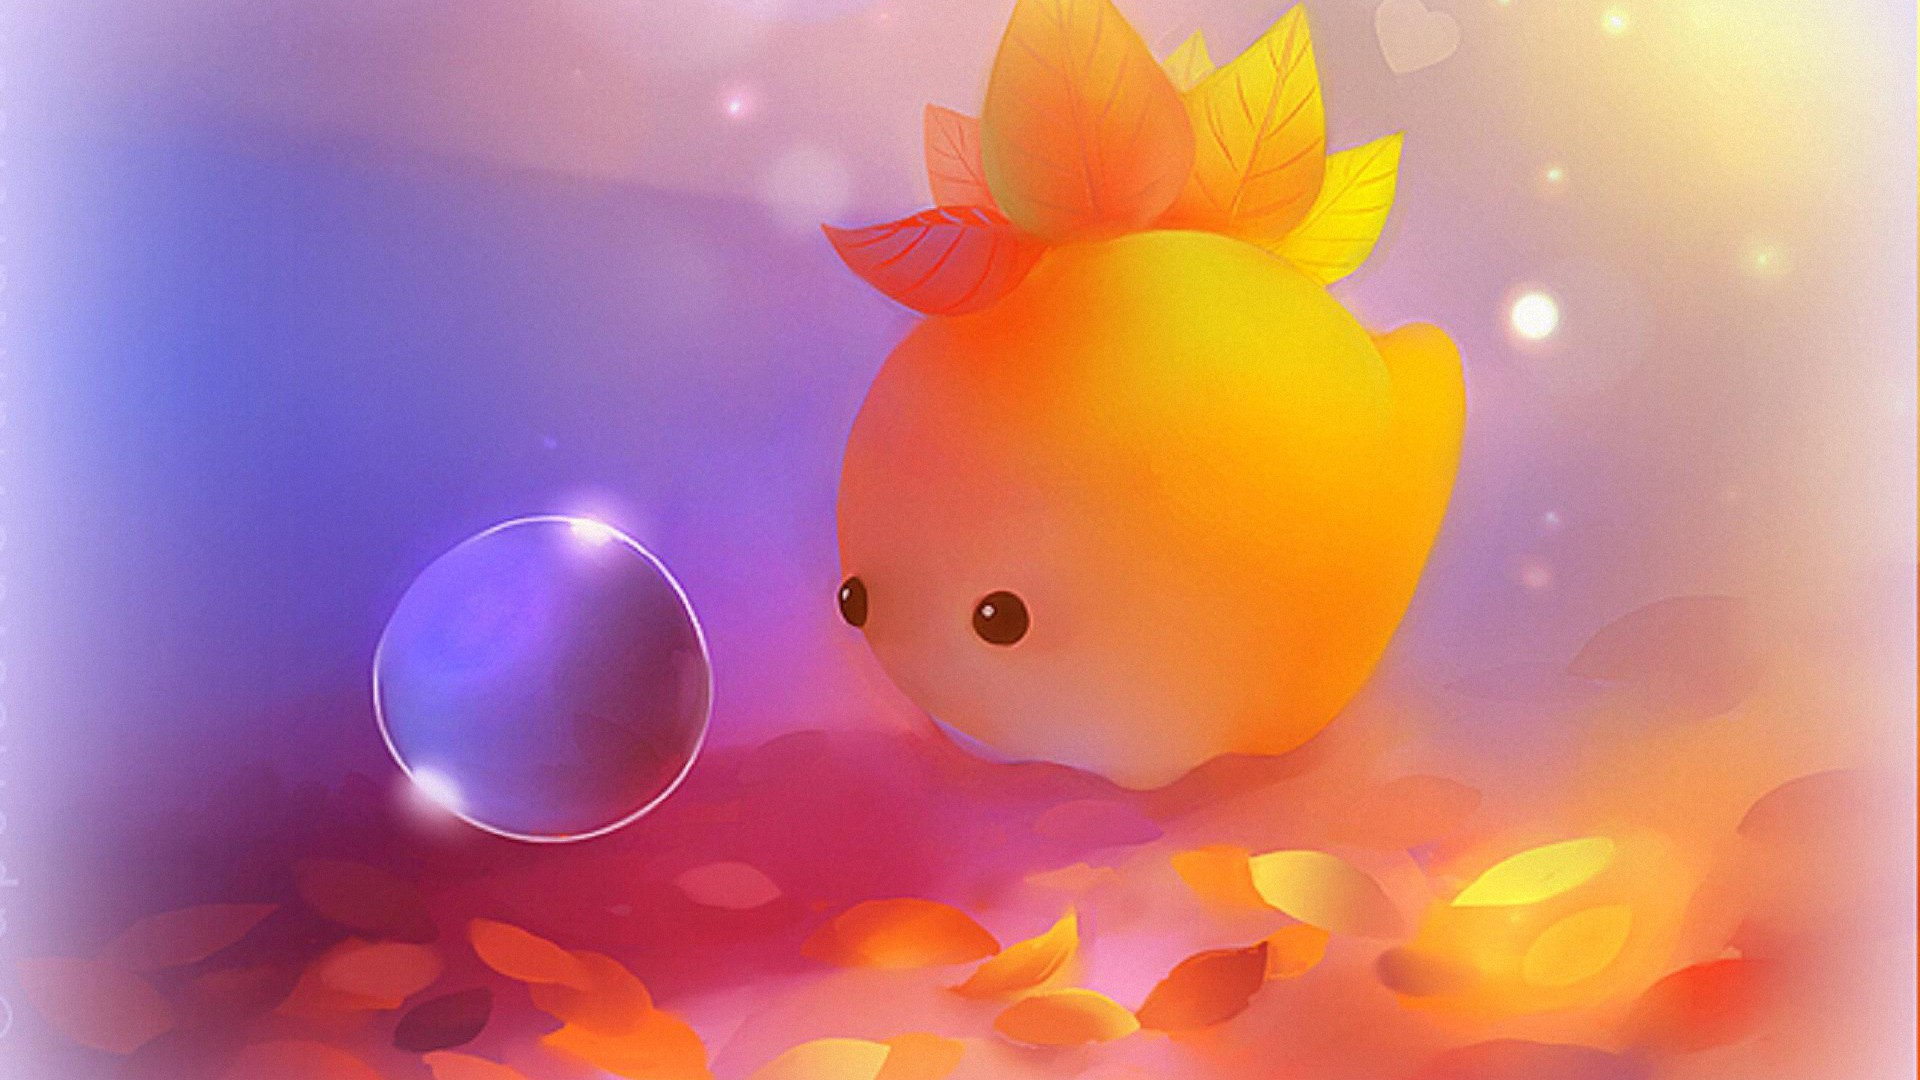 Cute Autumn Wallpapers (23 Wallpapers) – Adorable Wallpapers